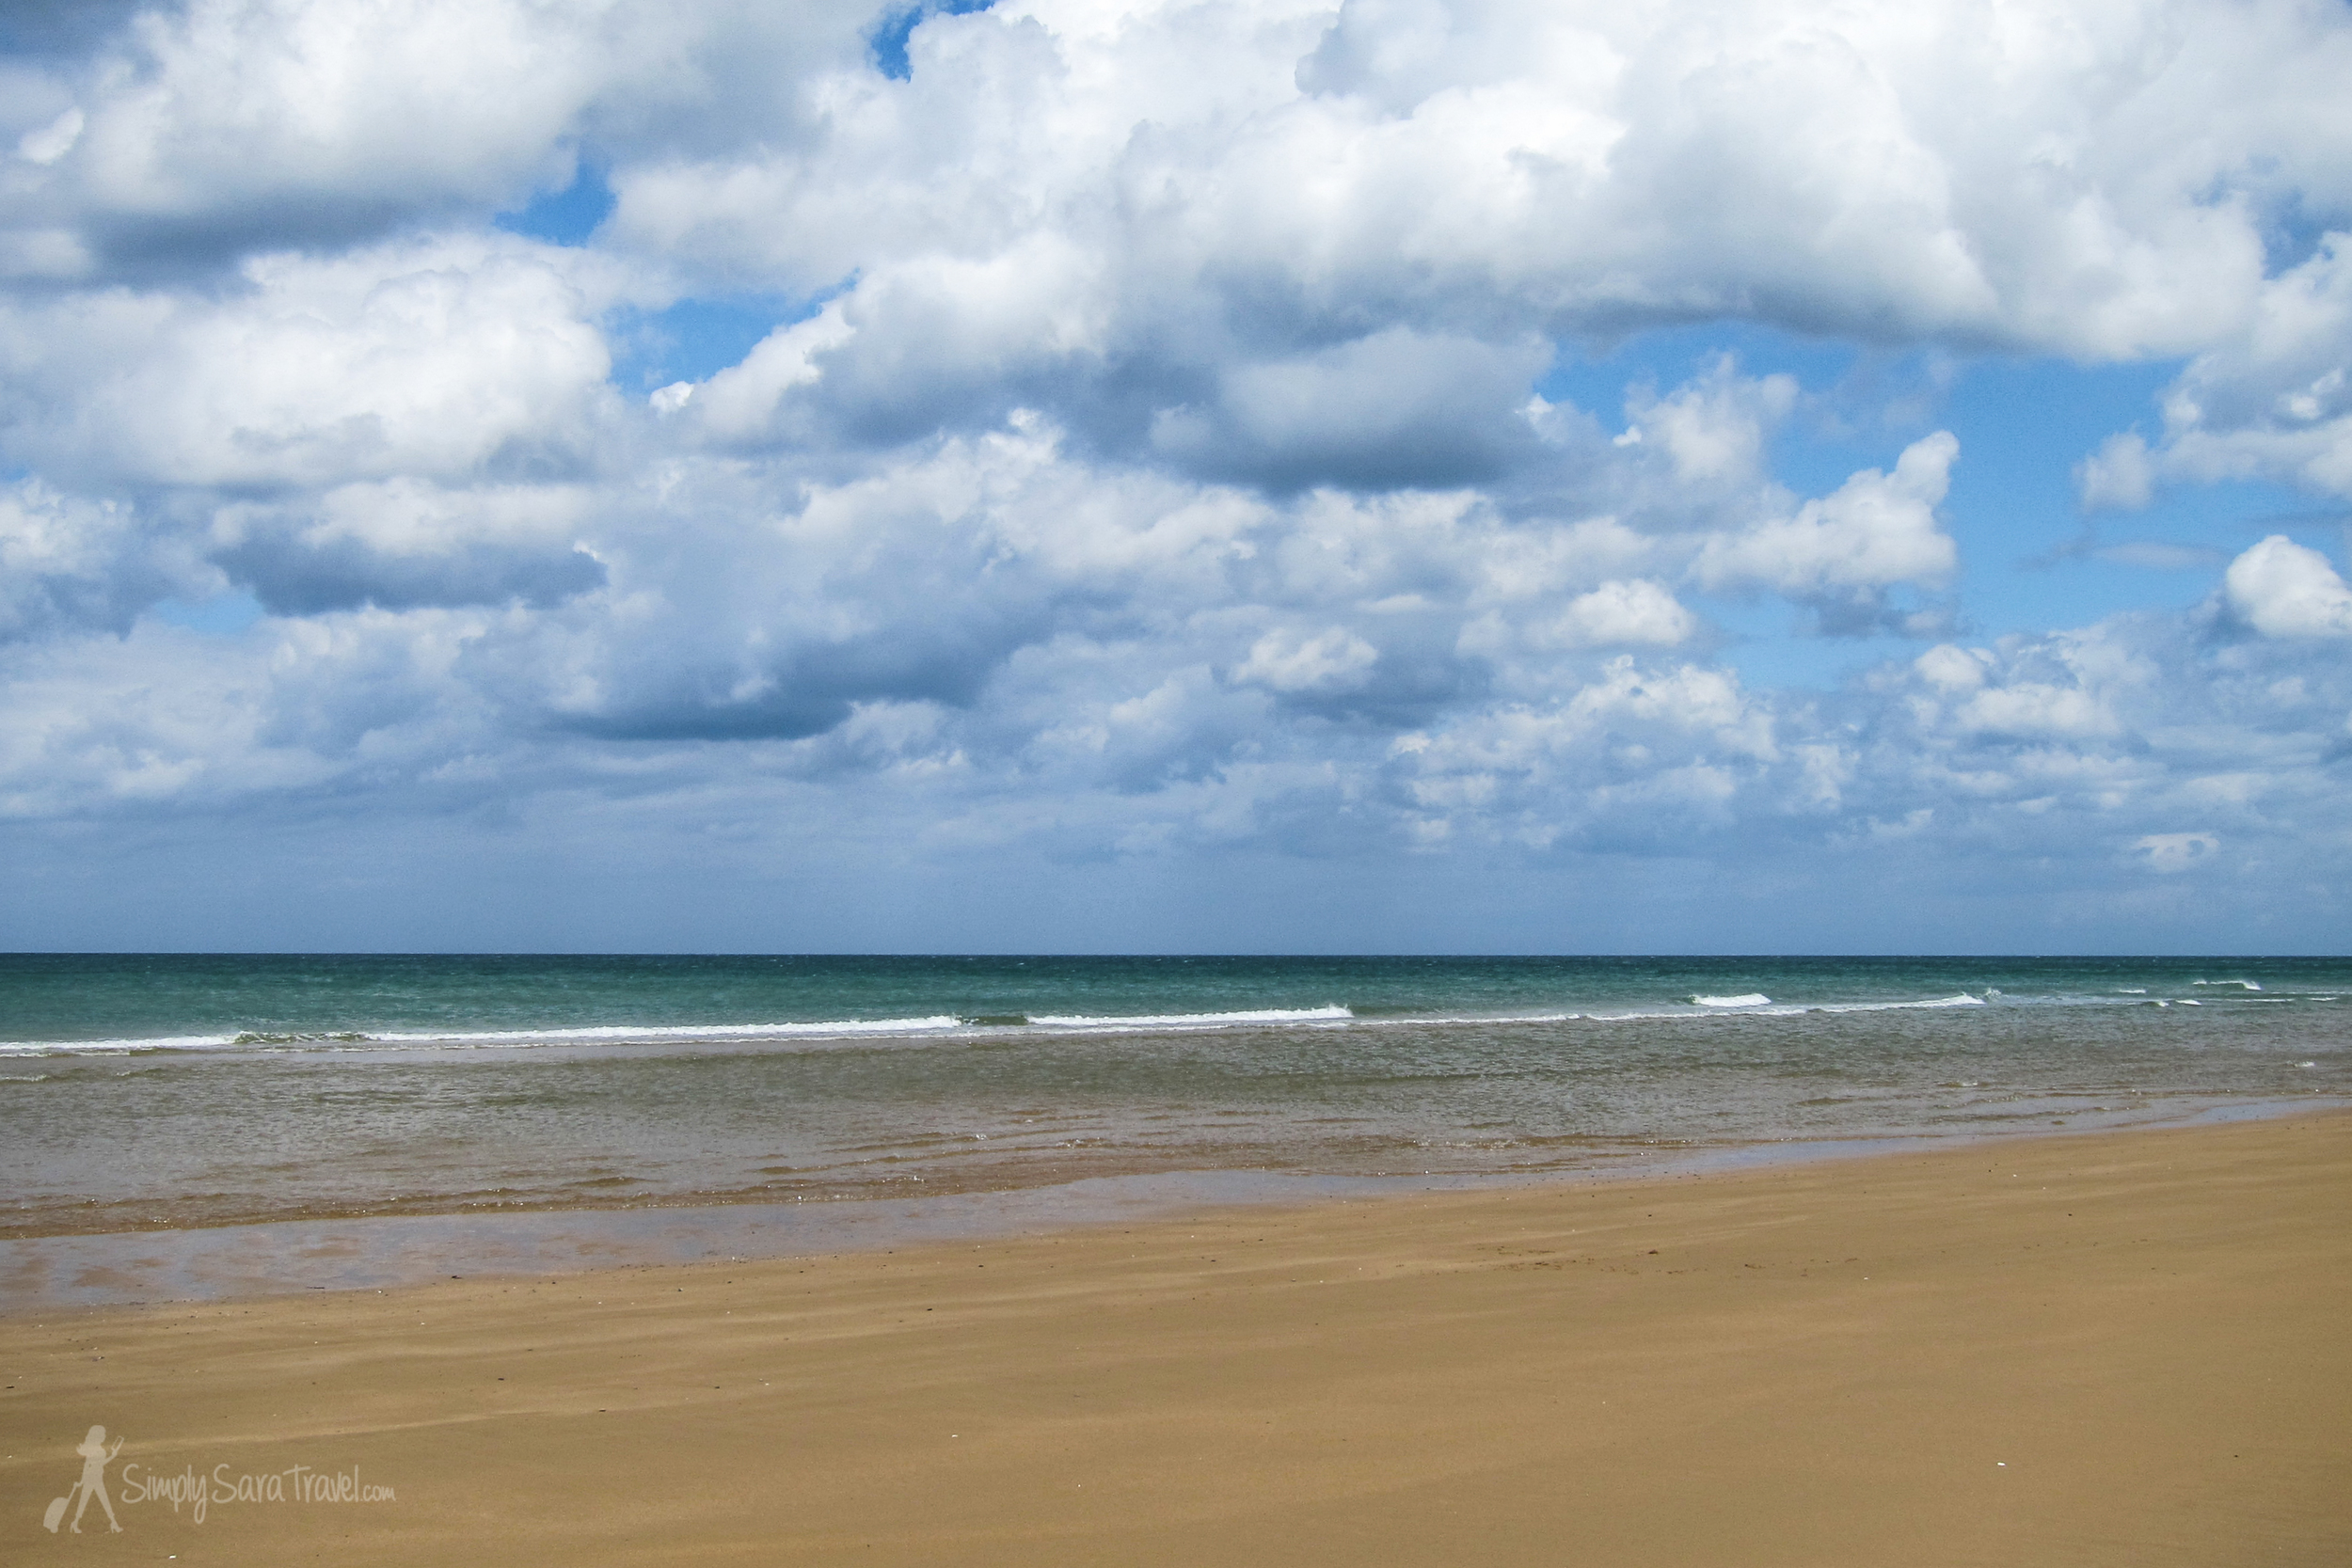 This is Omaha beach, one of the D-Day beaches. It was odd to us to think that people still sunbathe and swim here, but as our guide pointed out, there have been so many conflicts on European soil that it would be impossible to setaside land just because of its significance in a war. On a day like the one we had in June, only plaques, memorials, and our tour guide's stories reminded us of the grim past of this area.